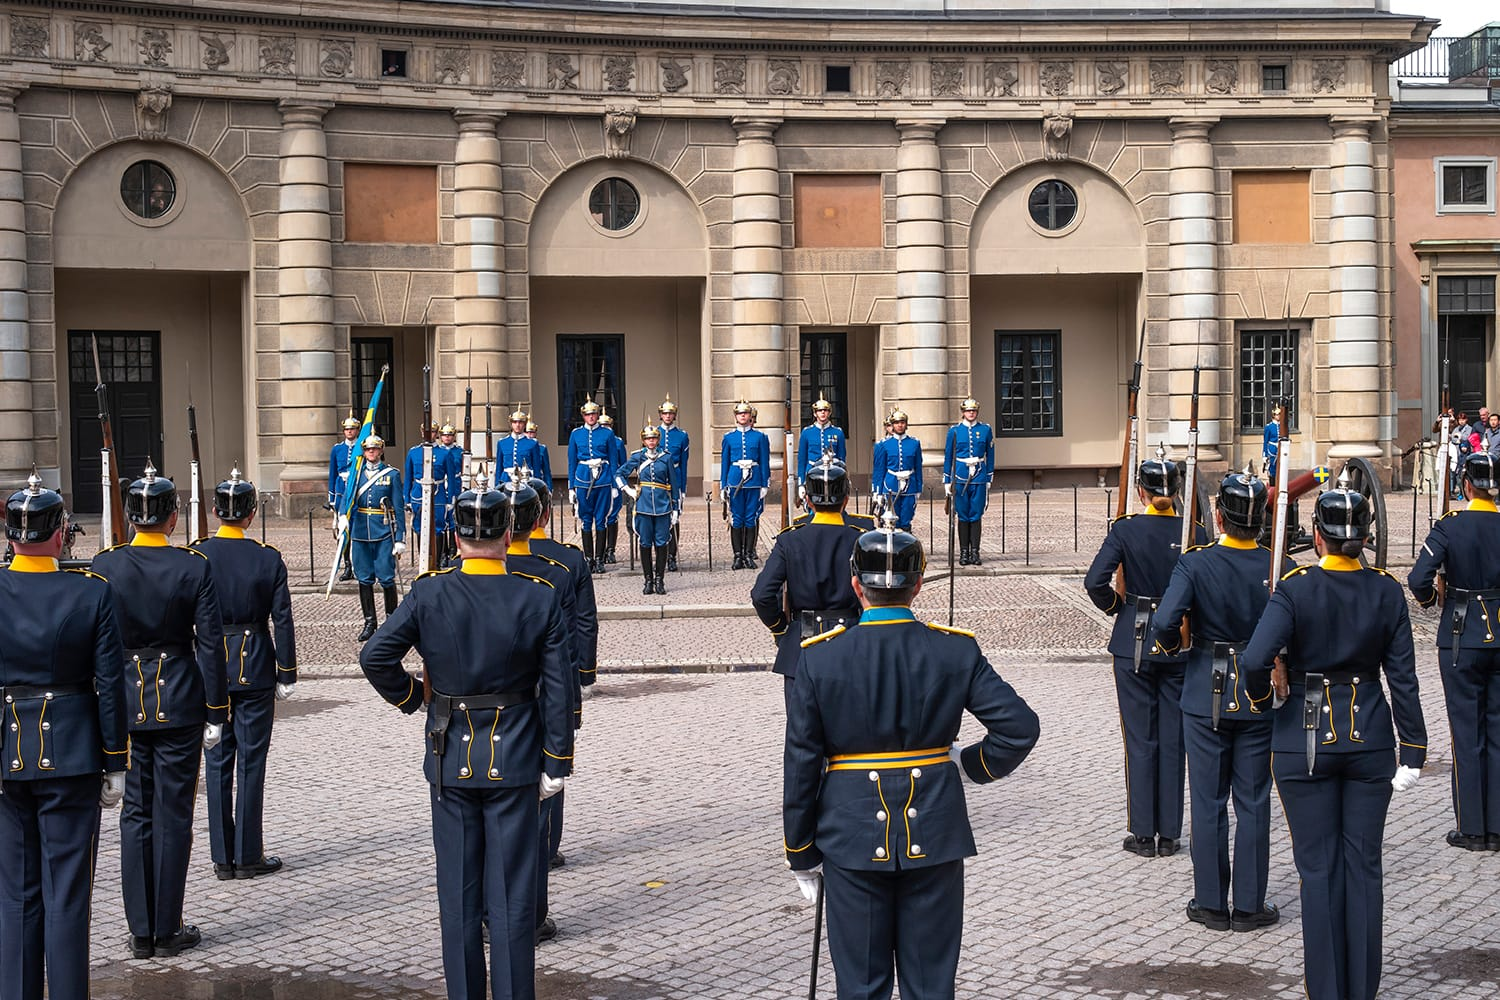 The Royal Guards Ceremony at the Royal Palace of Stockholm, Sweden